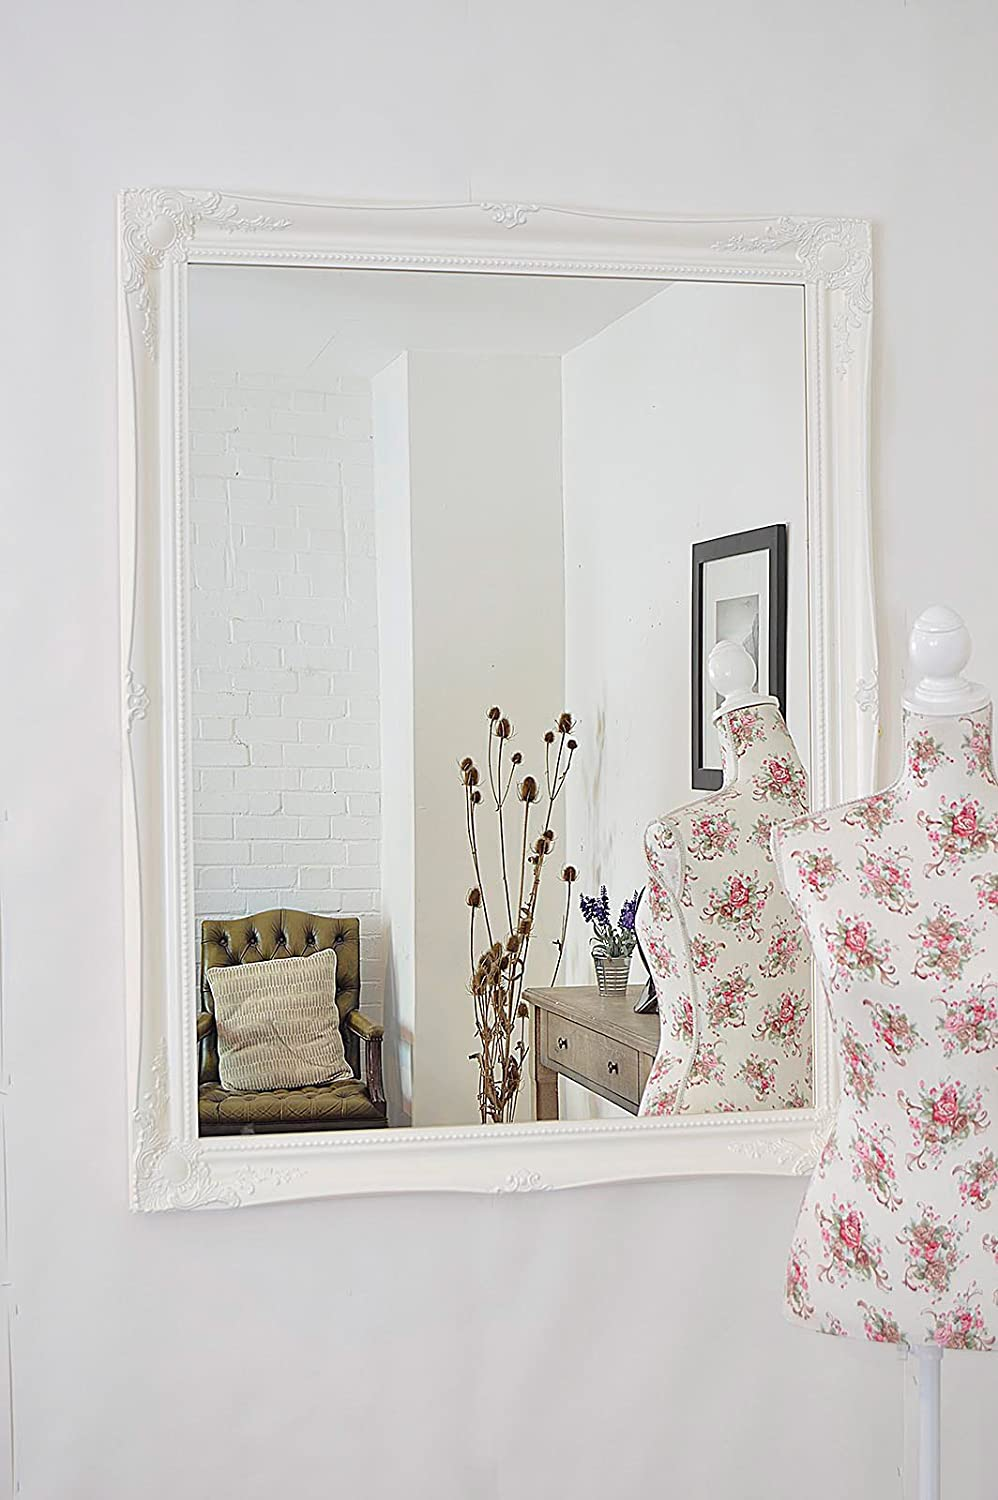 extra large french white shabby chic ornate framed bevelled wall overmantle decorative mirror 46inch x 36inch 117cm x 91cm stunning quality ready to